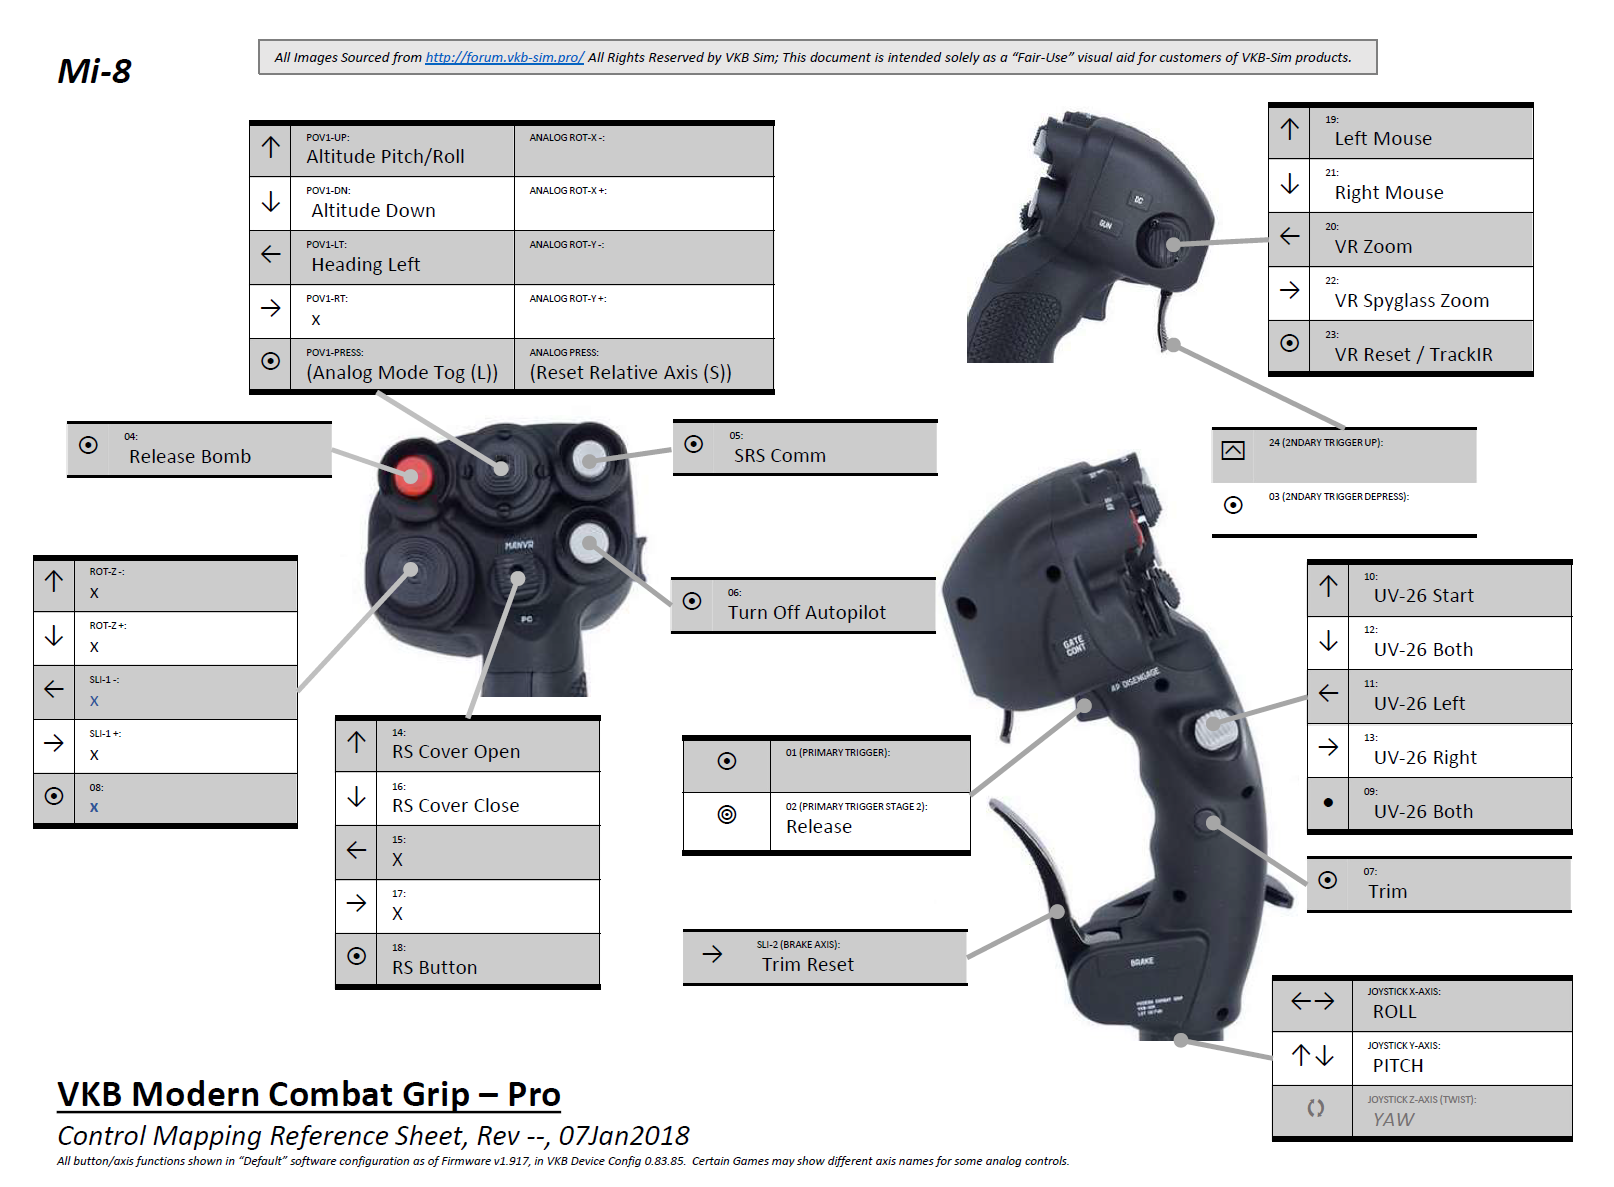 Profile VKB Modern Combat Grip Pro (MCG Pro), Warthog Throttle & K-51 Collective for Mi-8